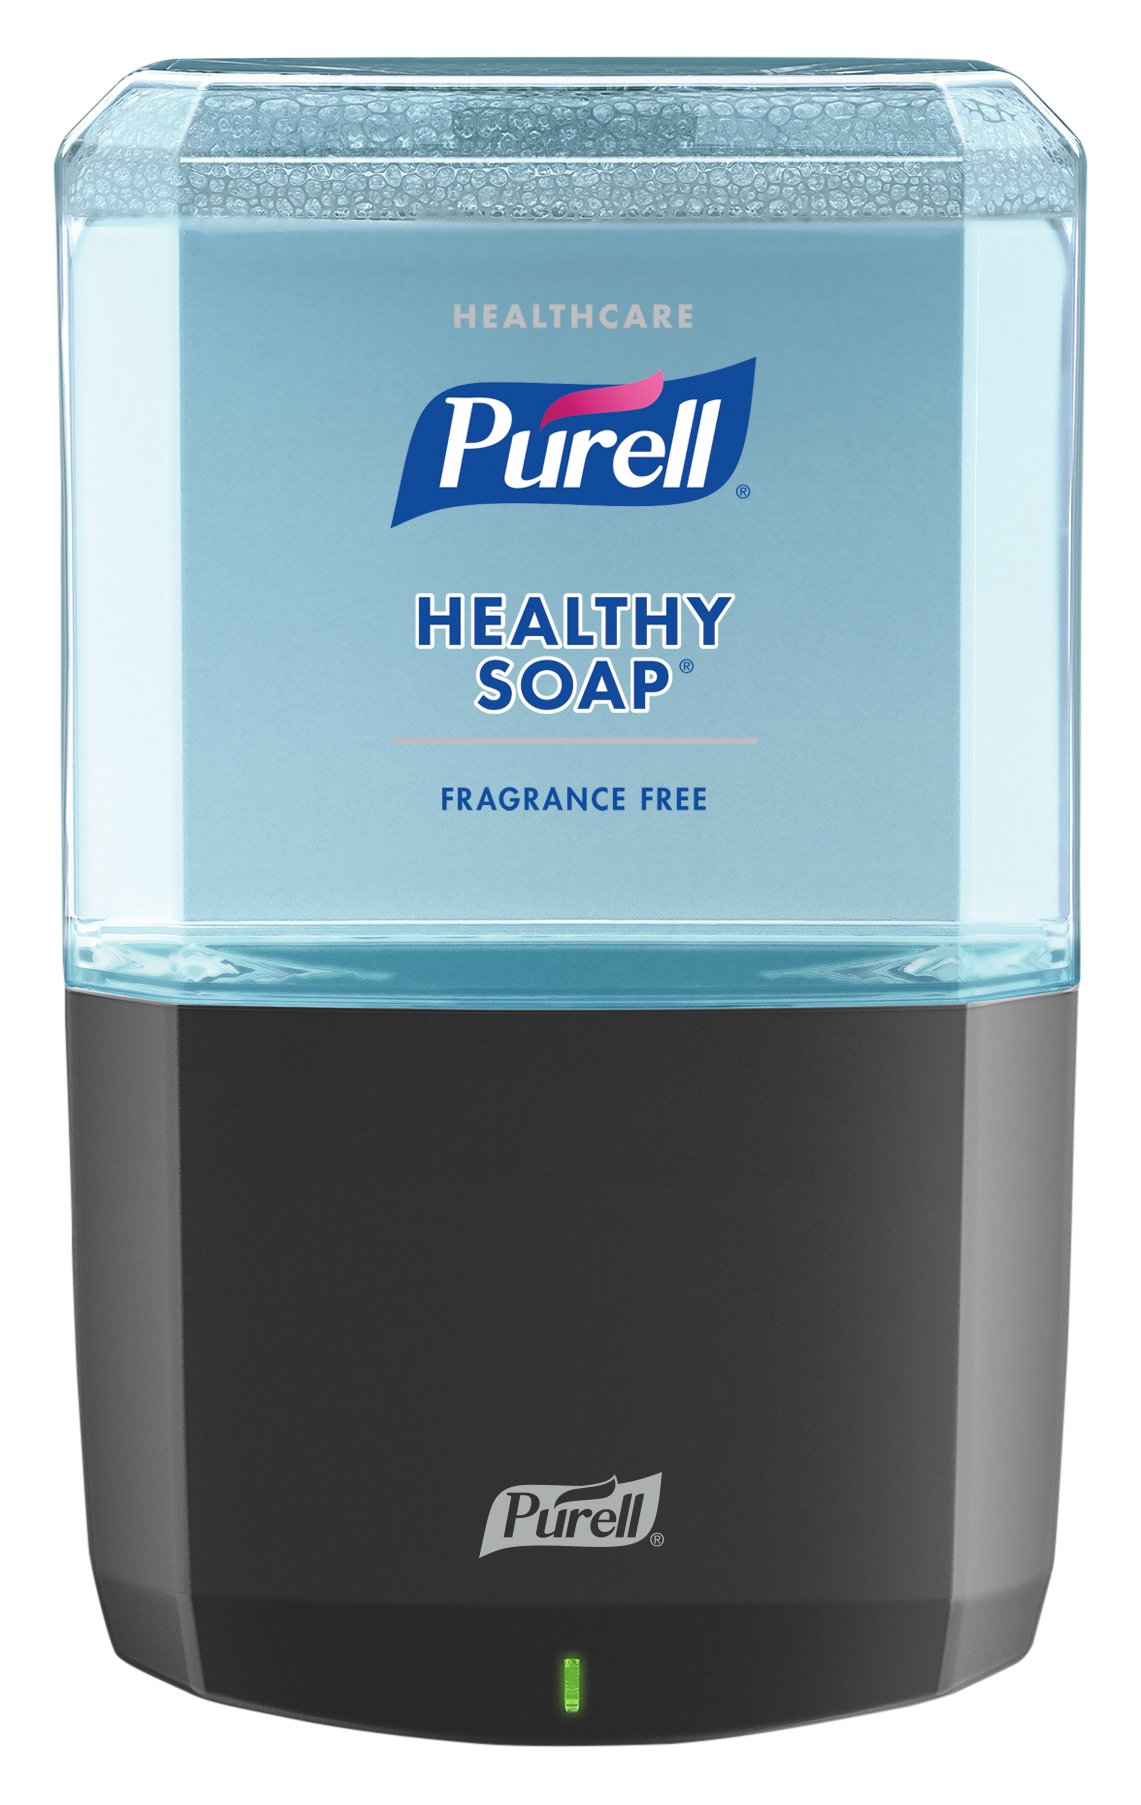 PURELL Healthcare HEALTHY SOAP Gentle and Free Foam ES6 Starter Kit, 1 - 1200 mL Soap Refill + 1 - ES6 Graphite Touch-Free Dispenser - 6472-1G